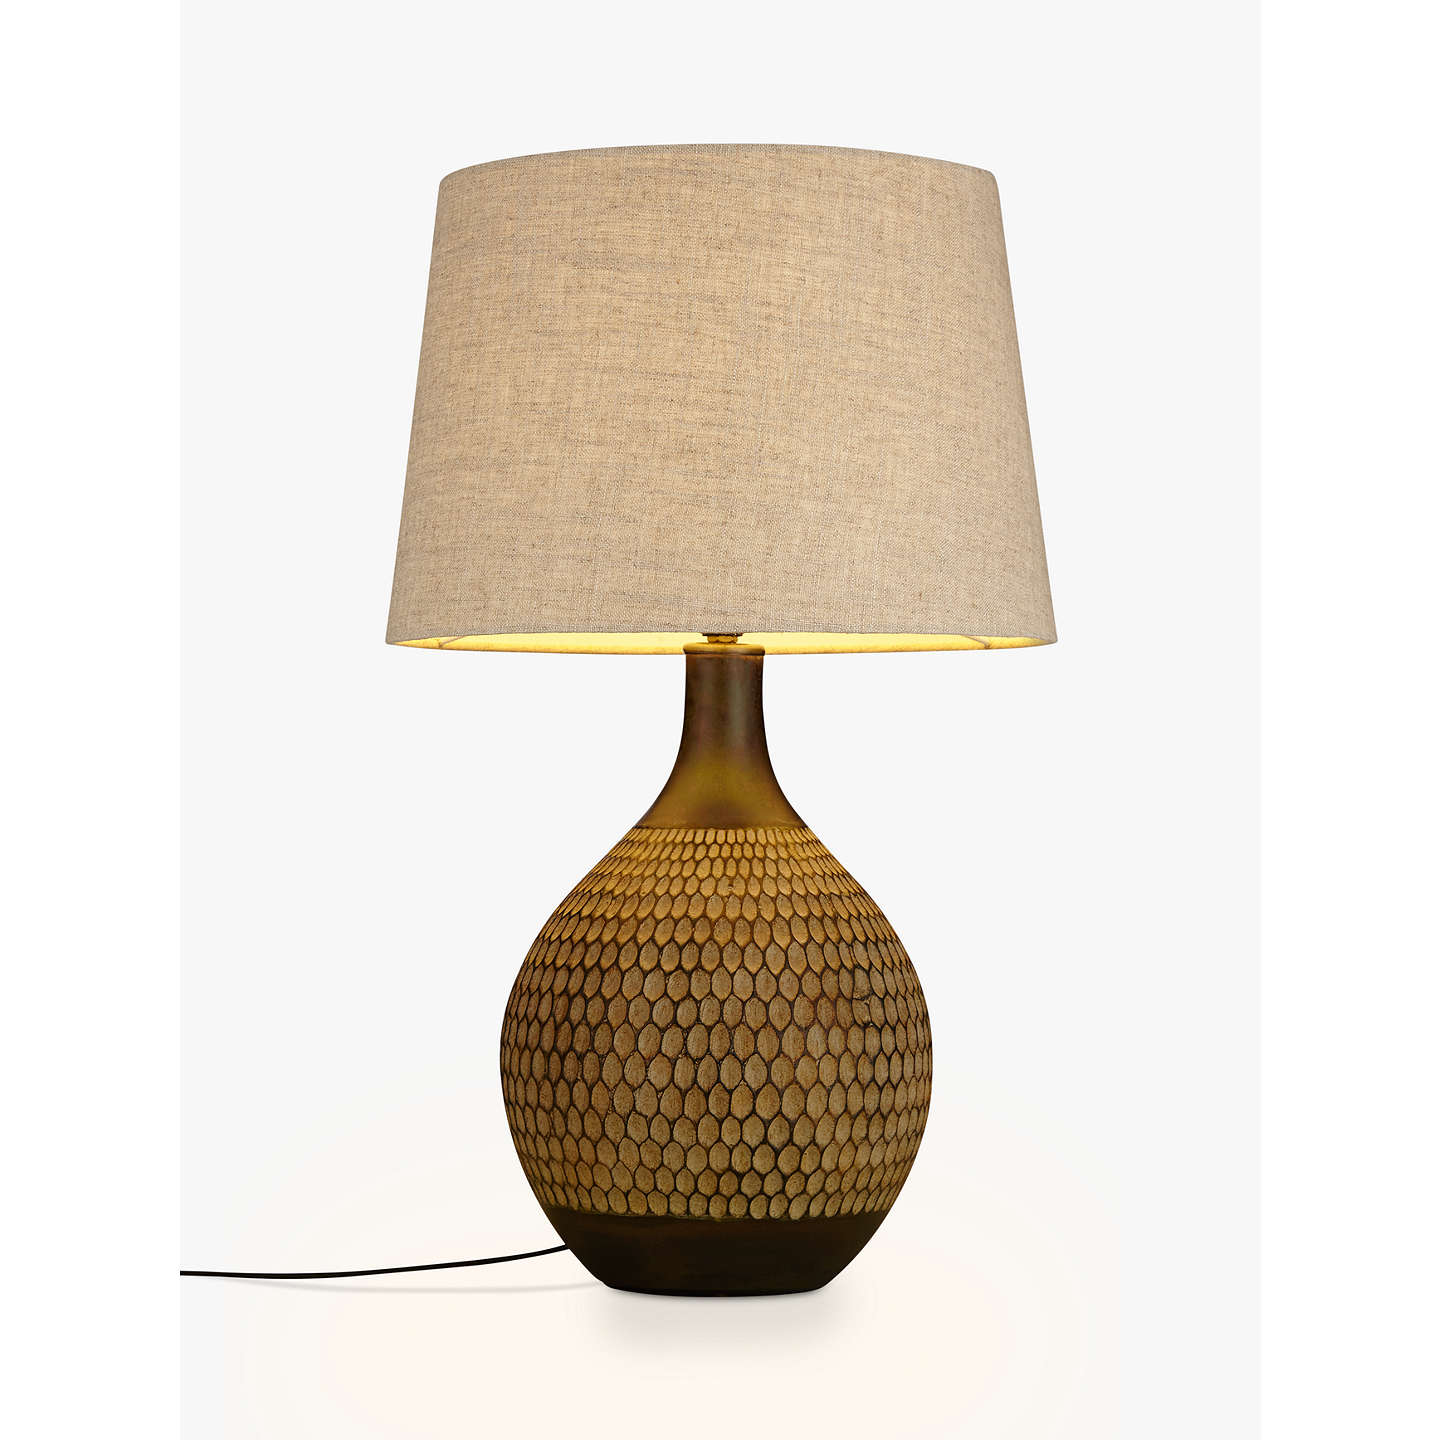 John lewis coco table lamp at john lewis buyjohn lewis coco table lamp online at johnlewis aloadofball Gallery